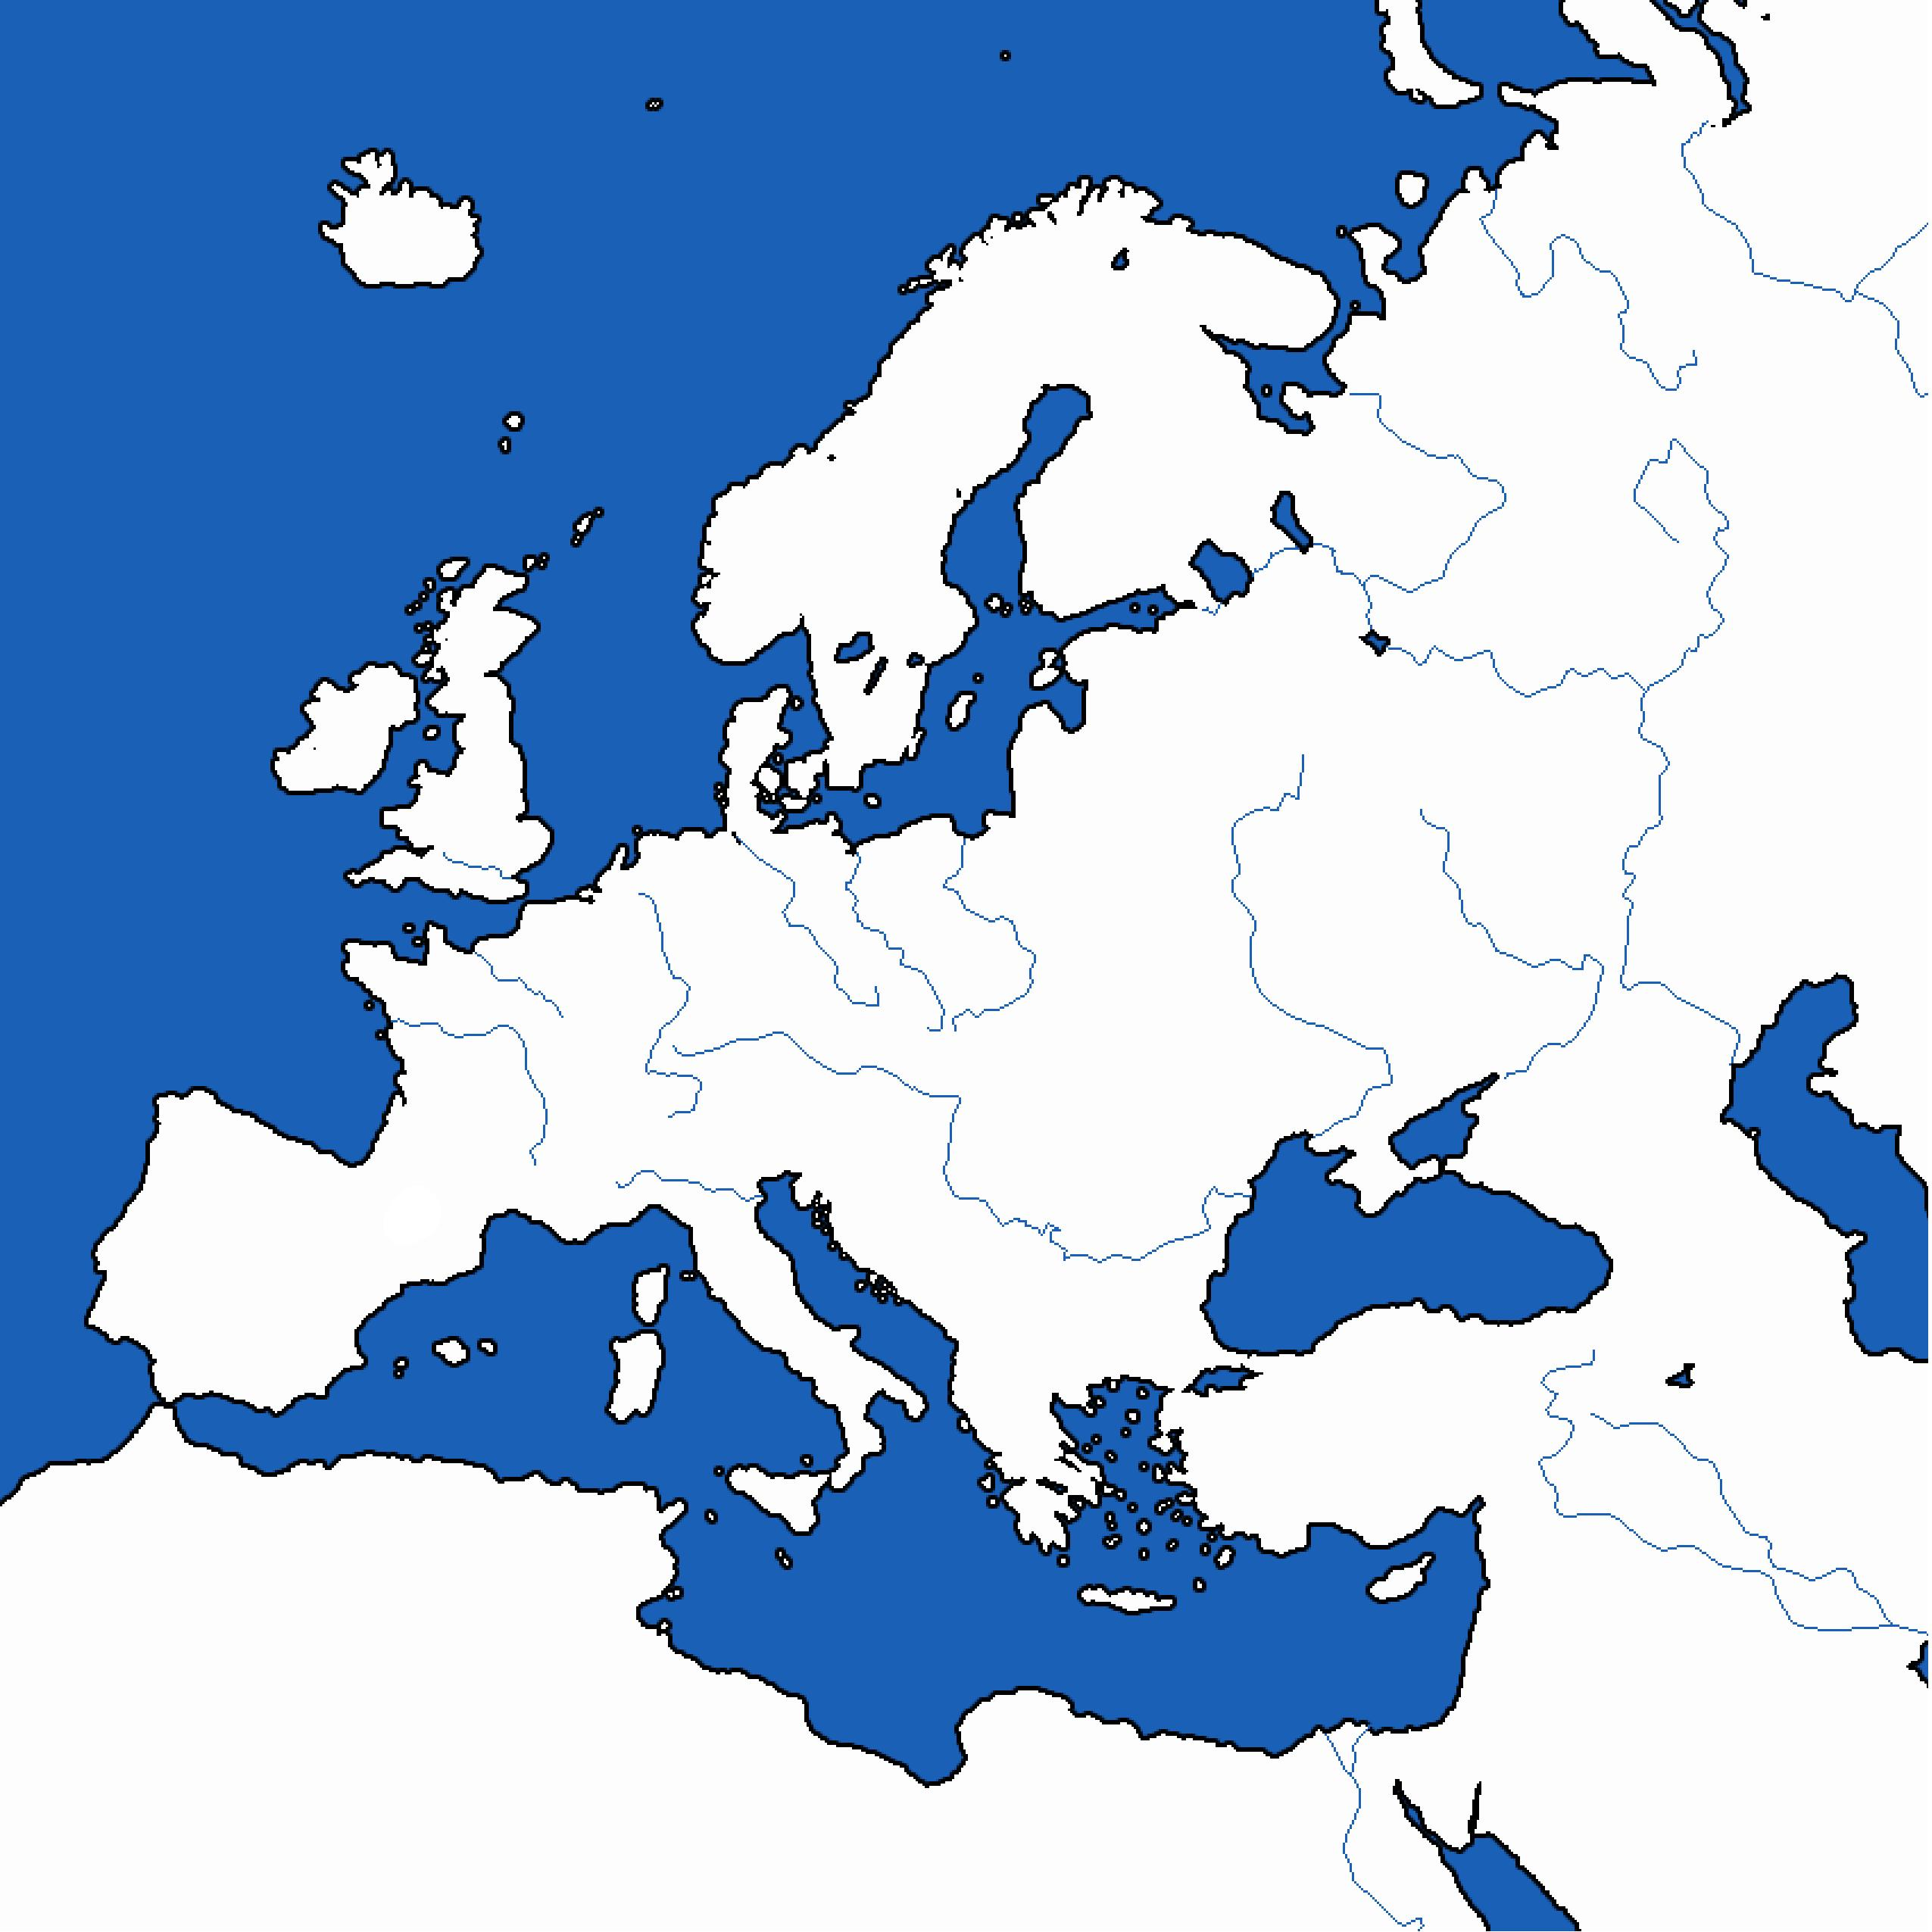 Black And White Map Of Europe Printable - ClipArt Best